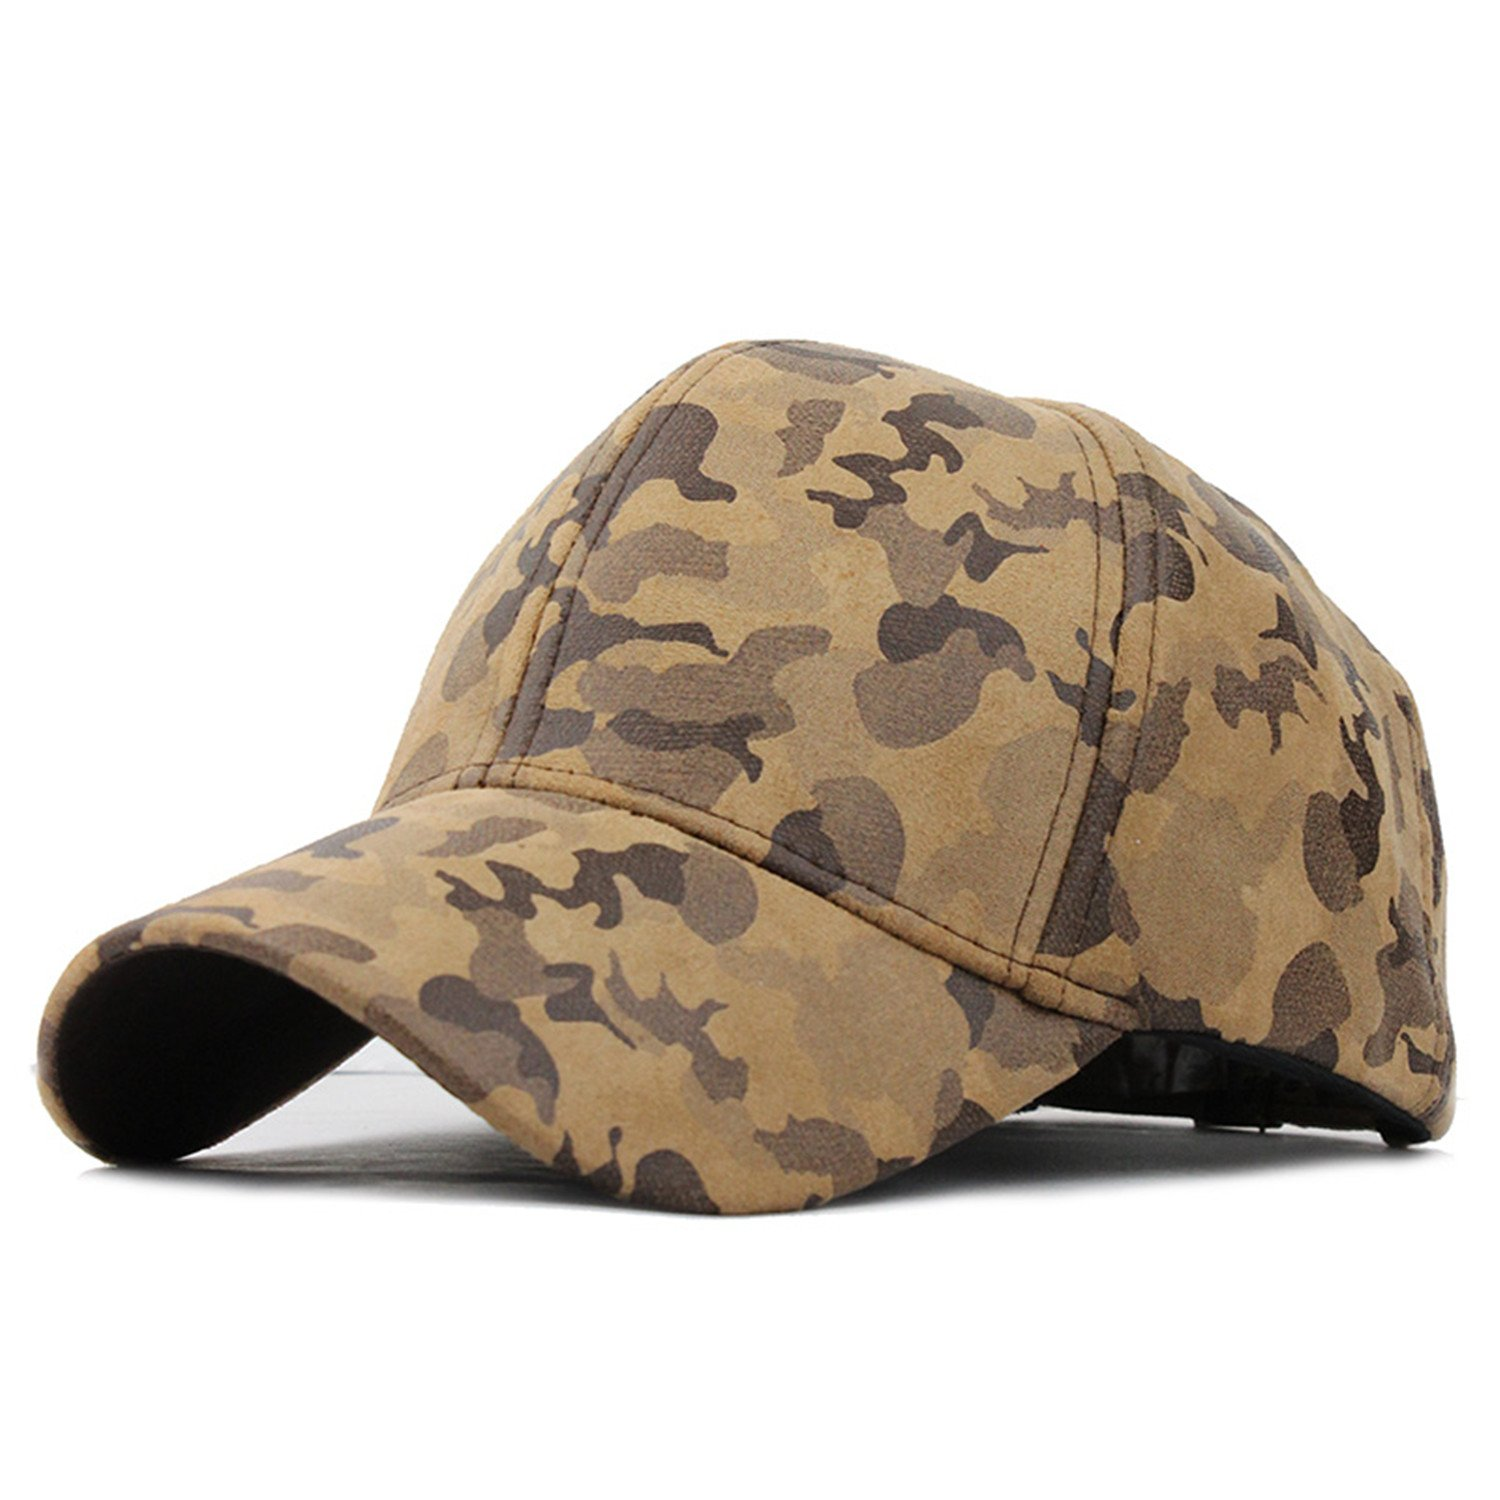 Tellusa Men and Women Baseball Cap Camouflage Hat Gorras Militares Adjustable Snapbacks Caps at Amazon Mens Clothing store: